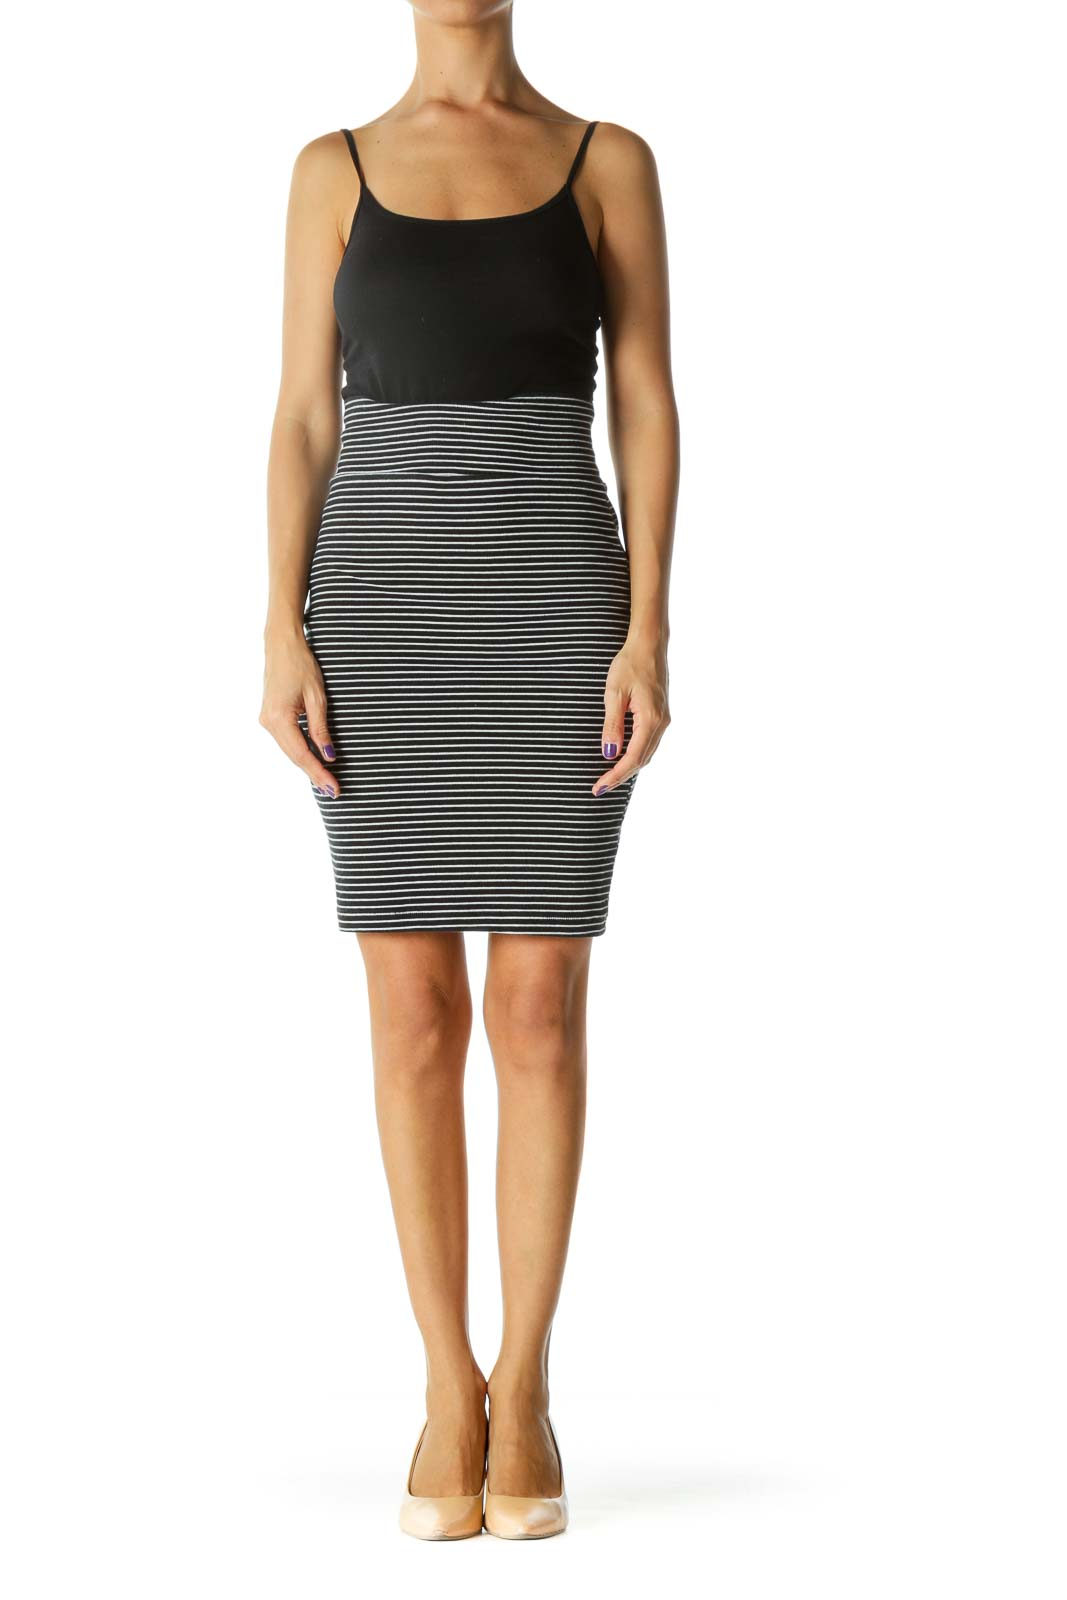 Black White Striped Slim Stretch Pencil Skirt